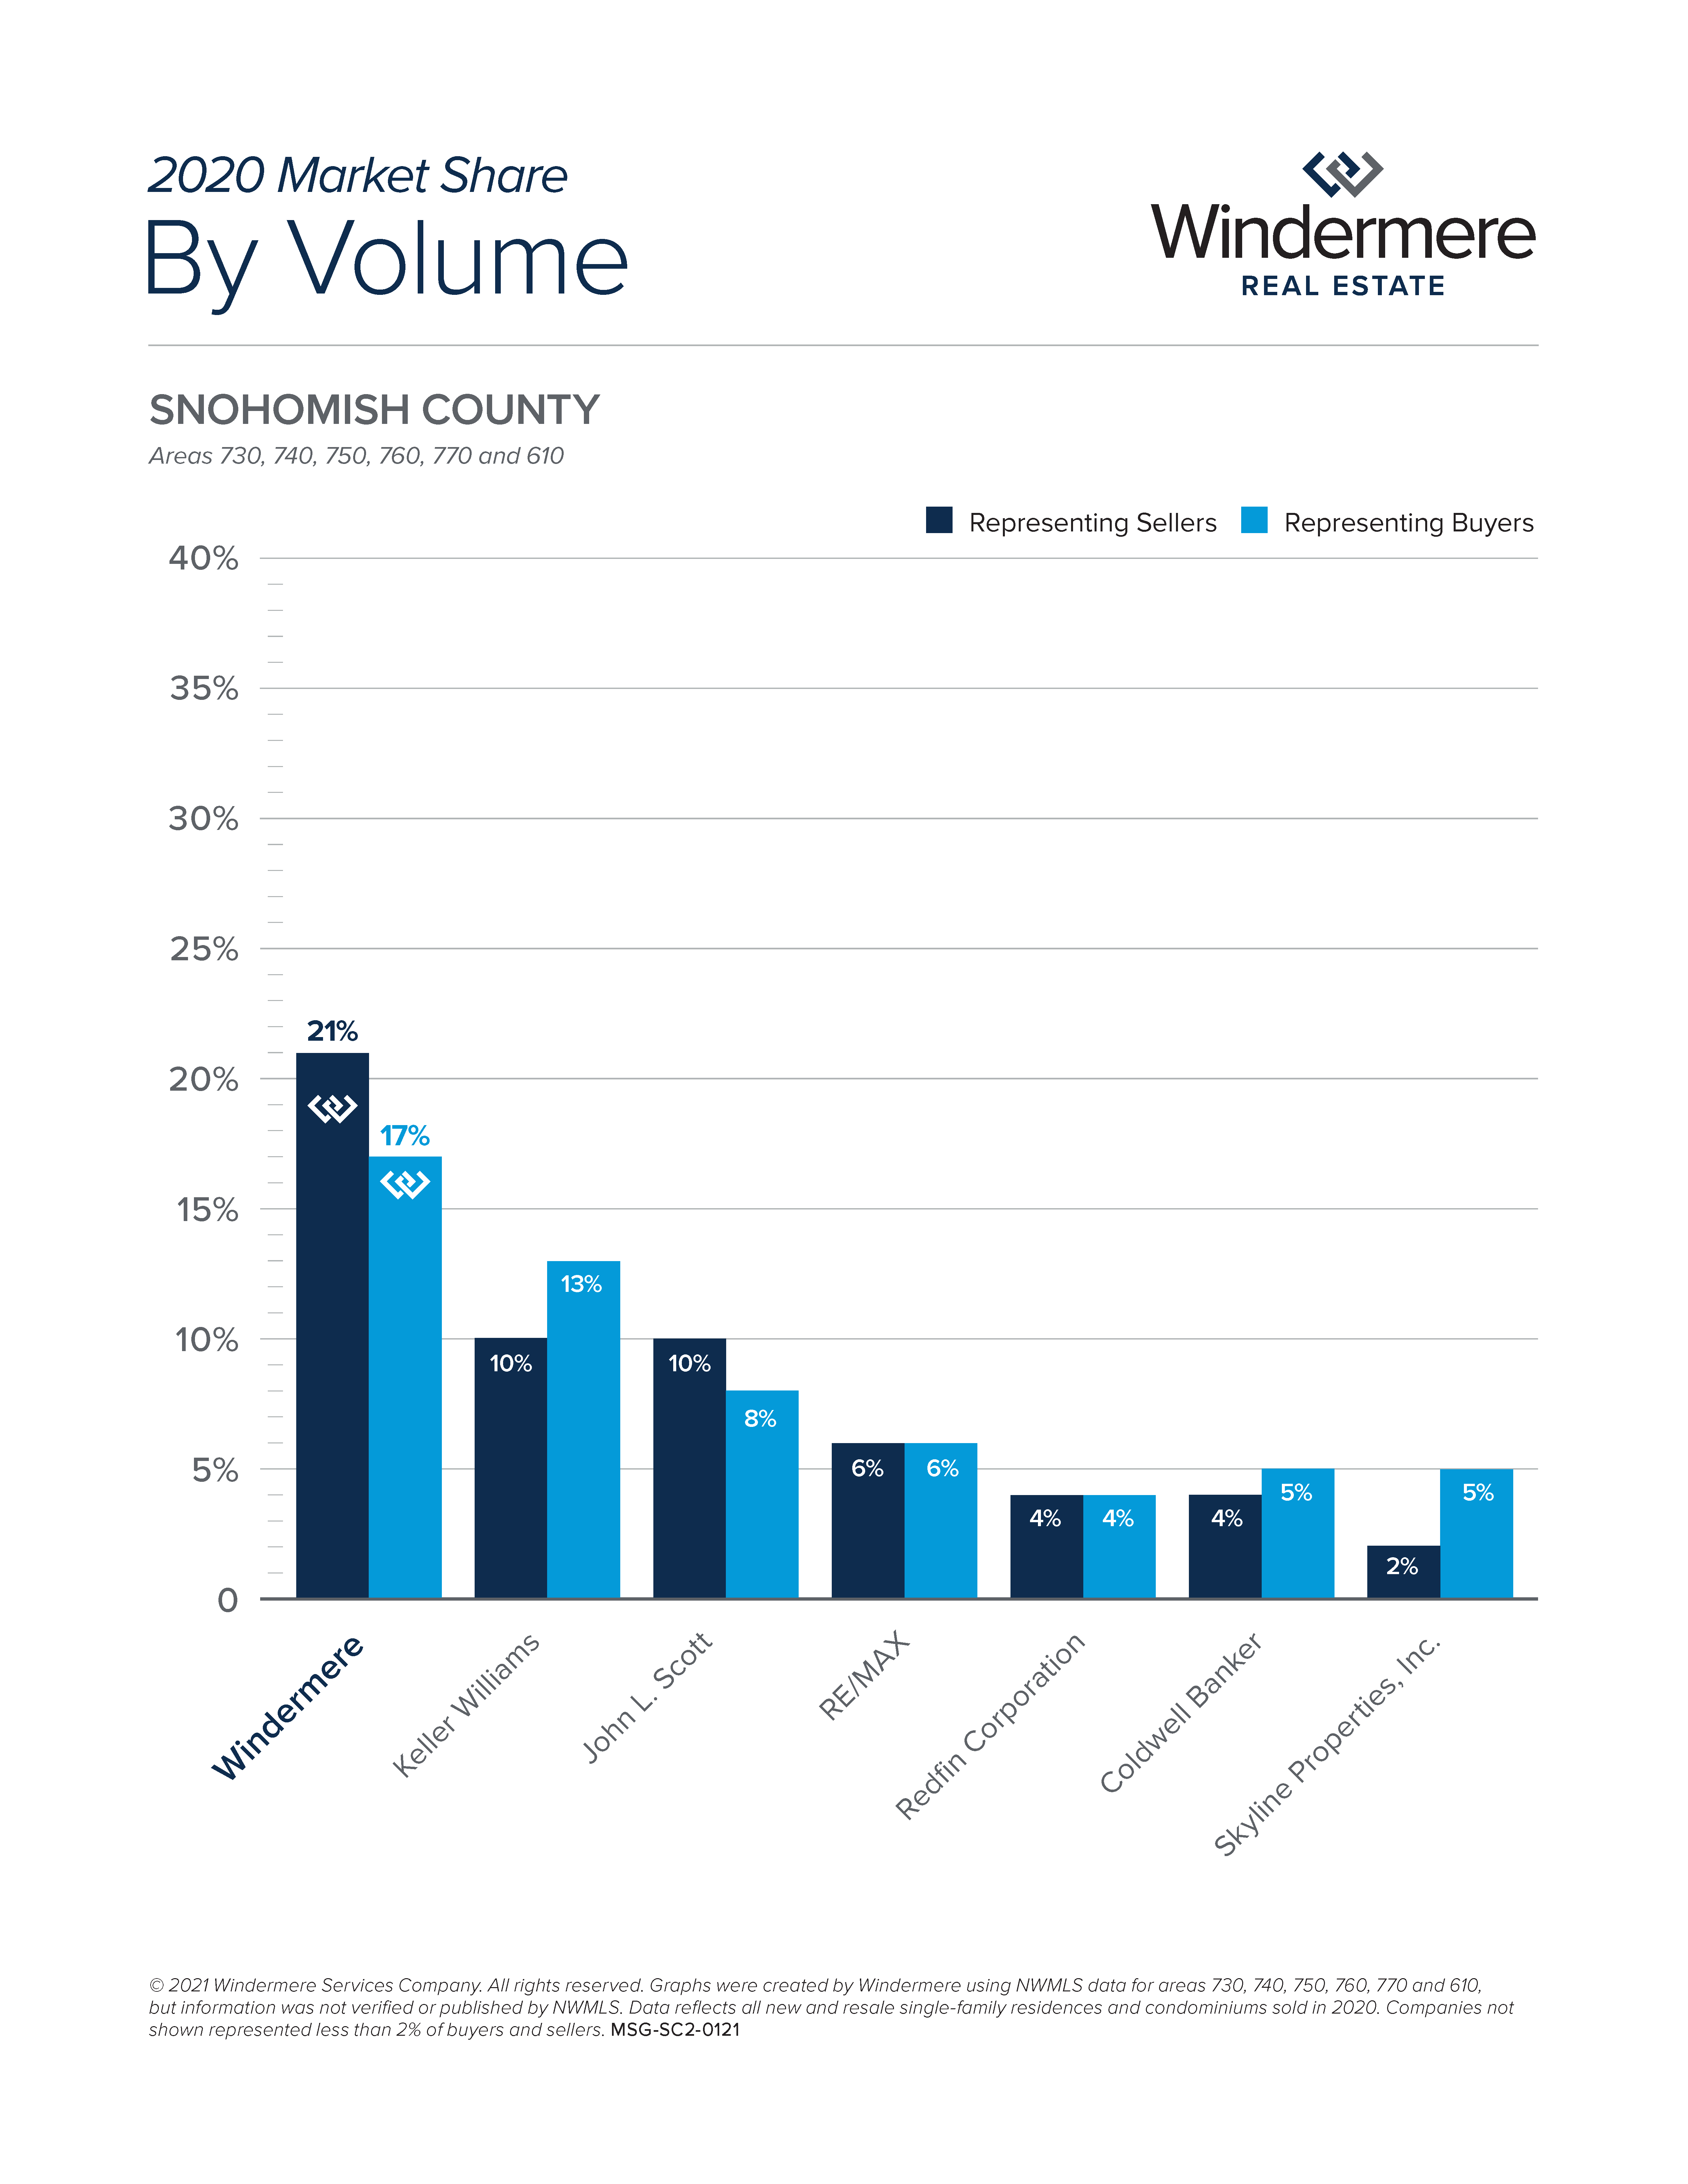 2020 Snohomish County by Volume